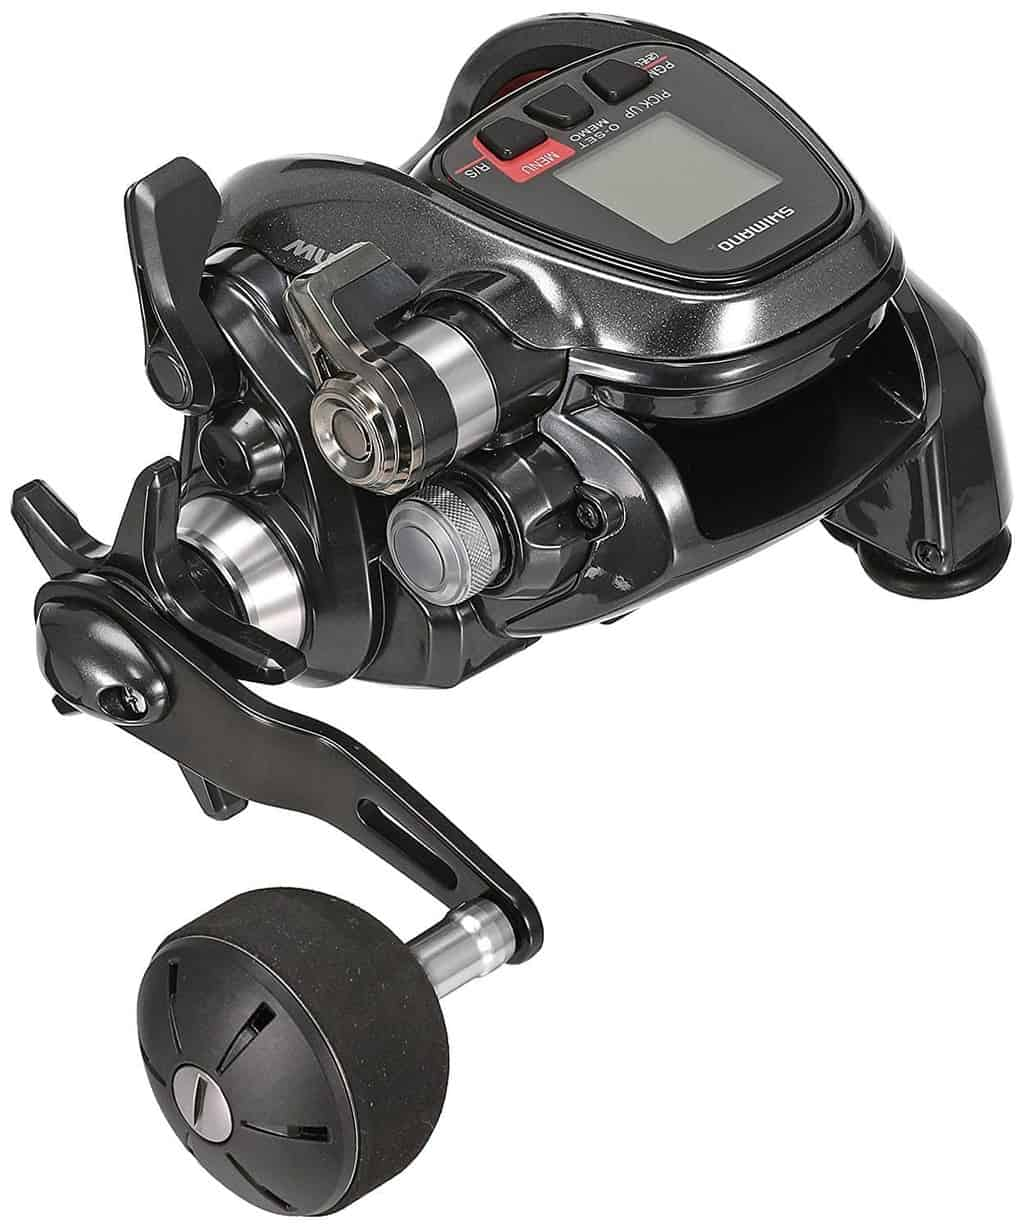 Best Electric Reel for Saltwater Kayak Fishing